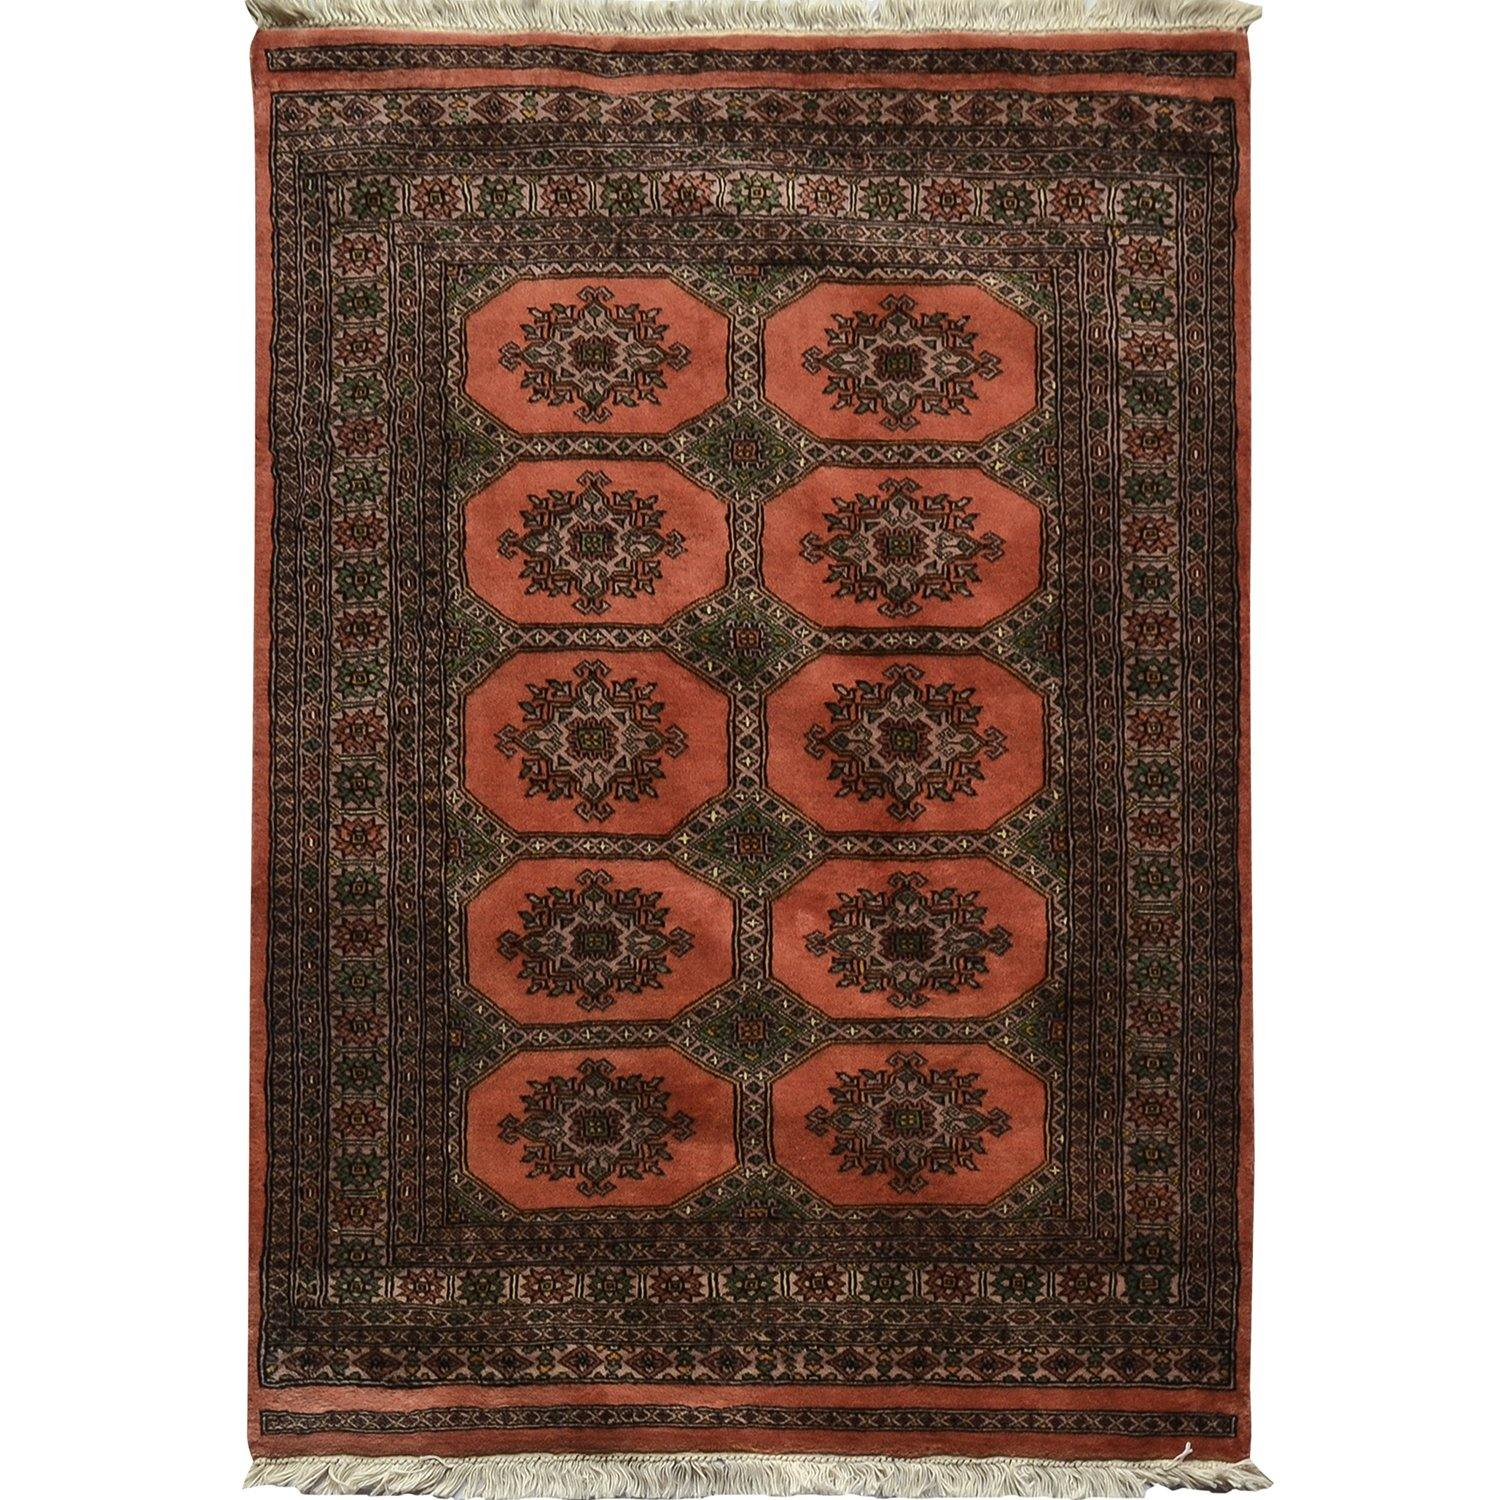 Hand-knotted Bokhara Rug 126cm x 175cm Persian-Rug | House-of-Haghi | NewMarket | Auckland | NZ | Handmade Persian Rugs | Hand Knotted Persian Rugs